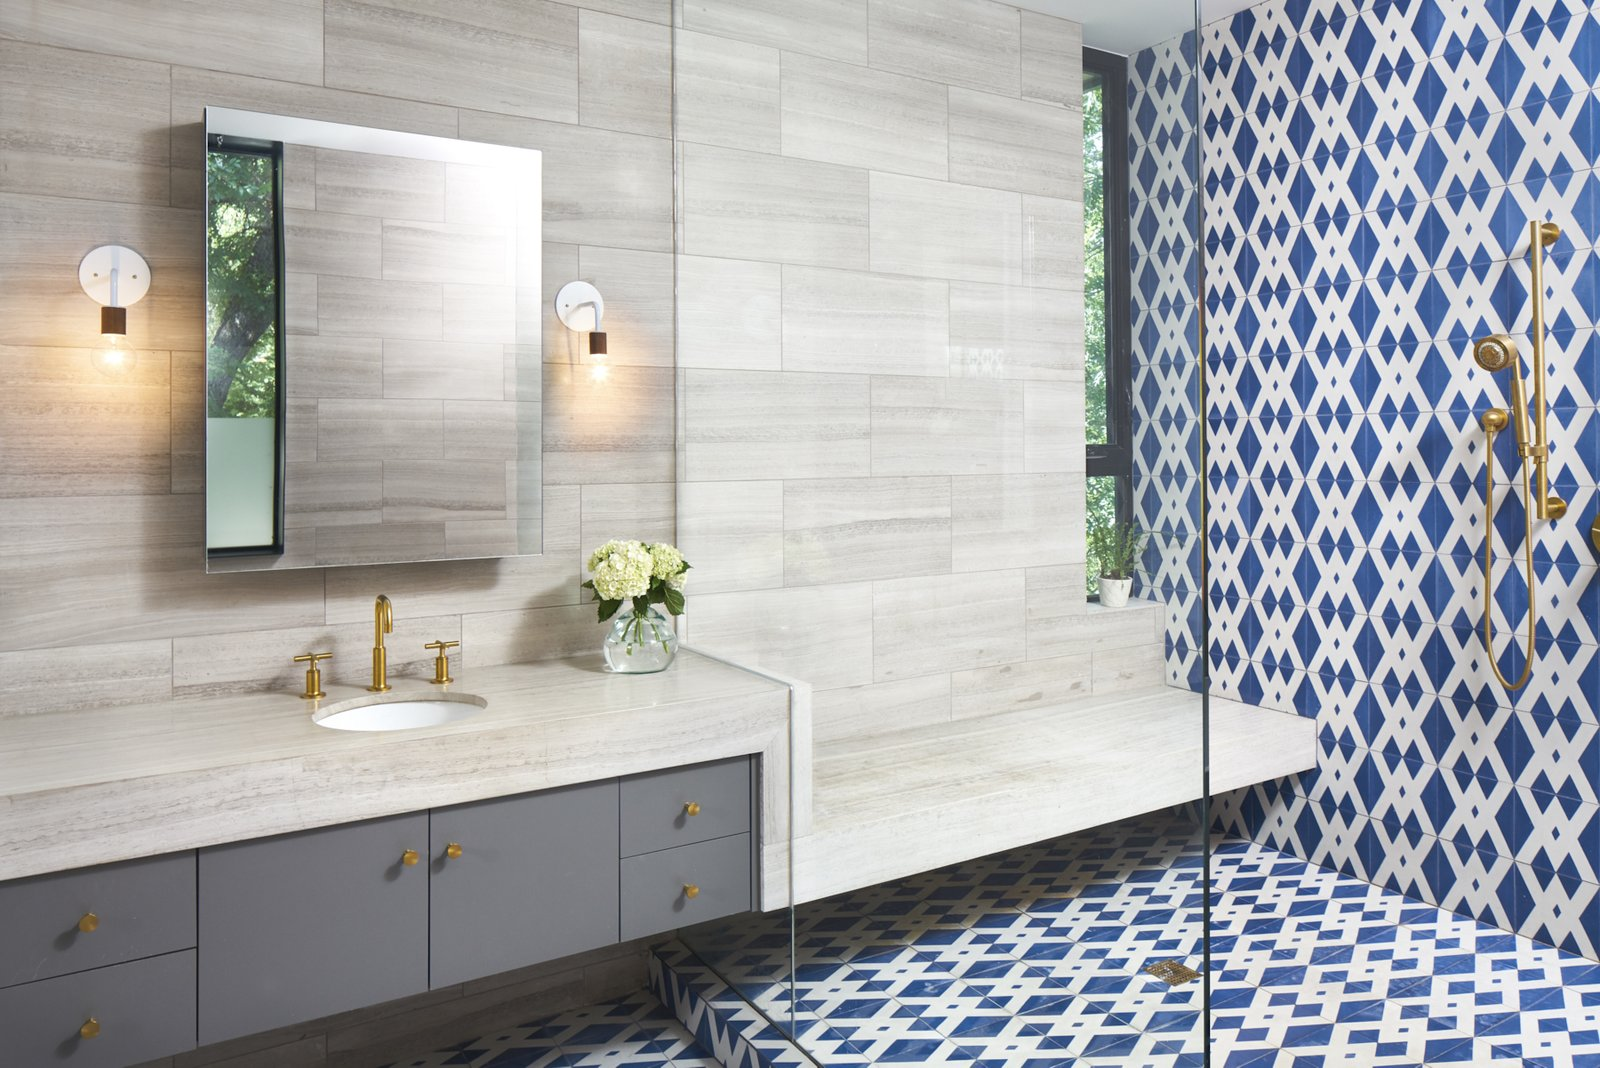 Master bathroom vanity and  'wet room'. Materials are encaustic concrete tile, limestone tile.  Airole Way Residence